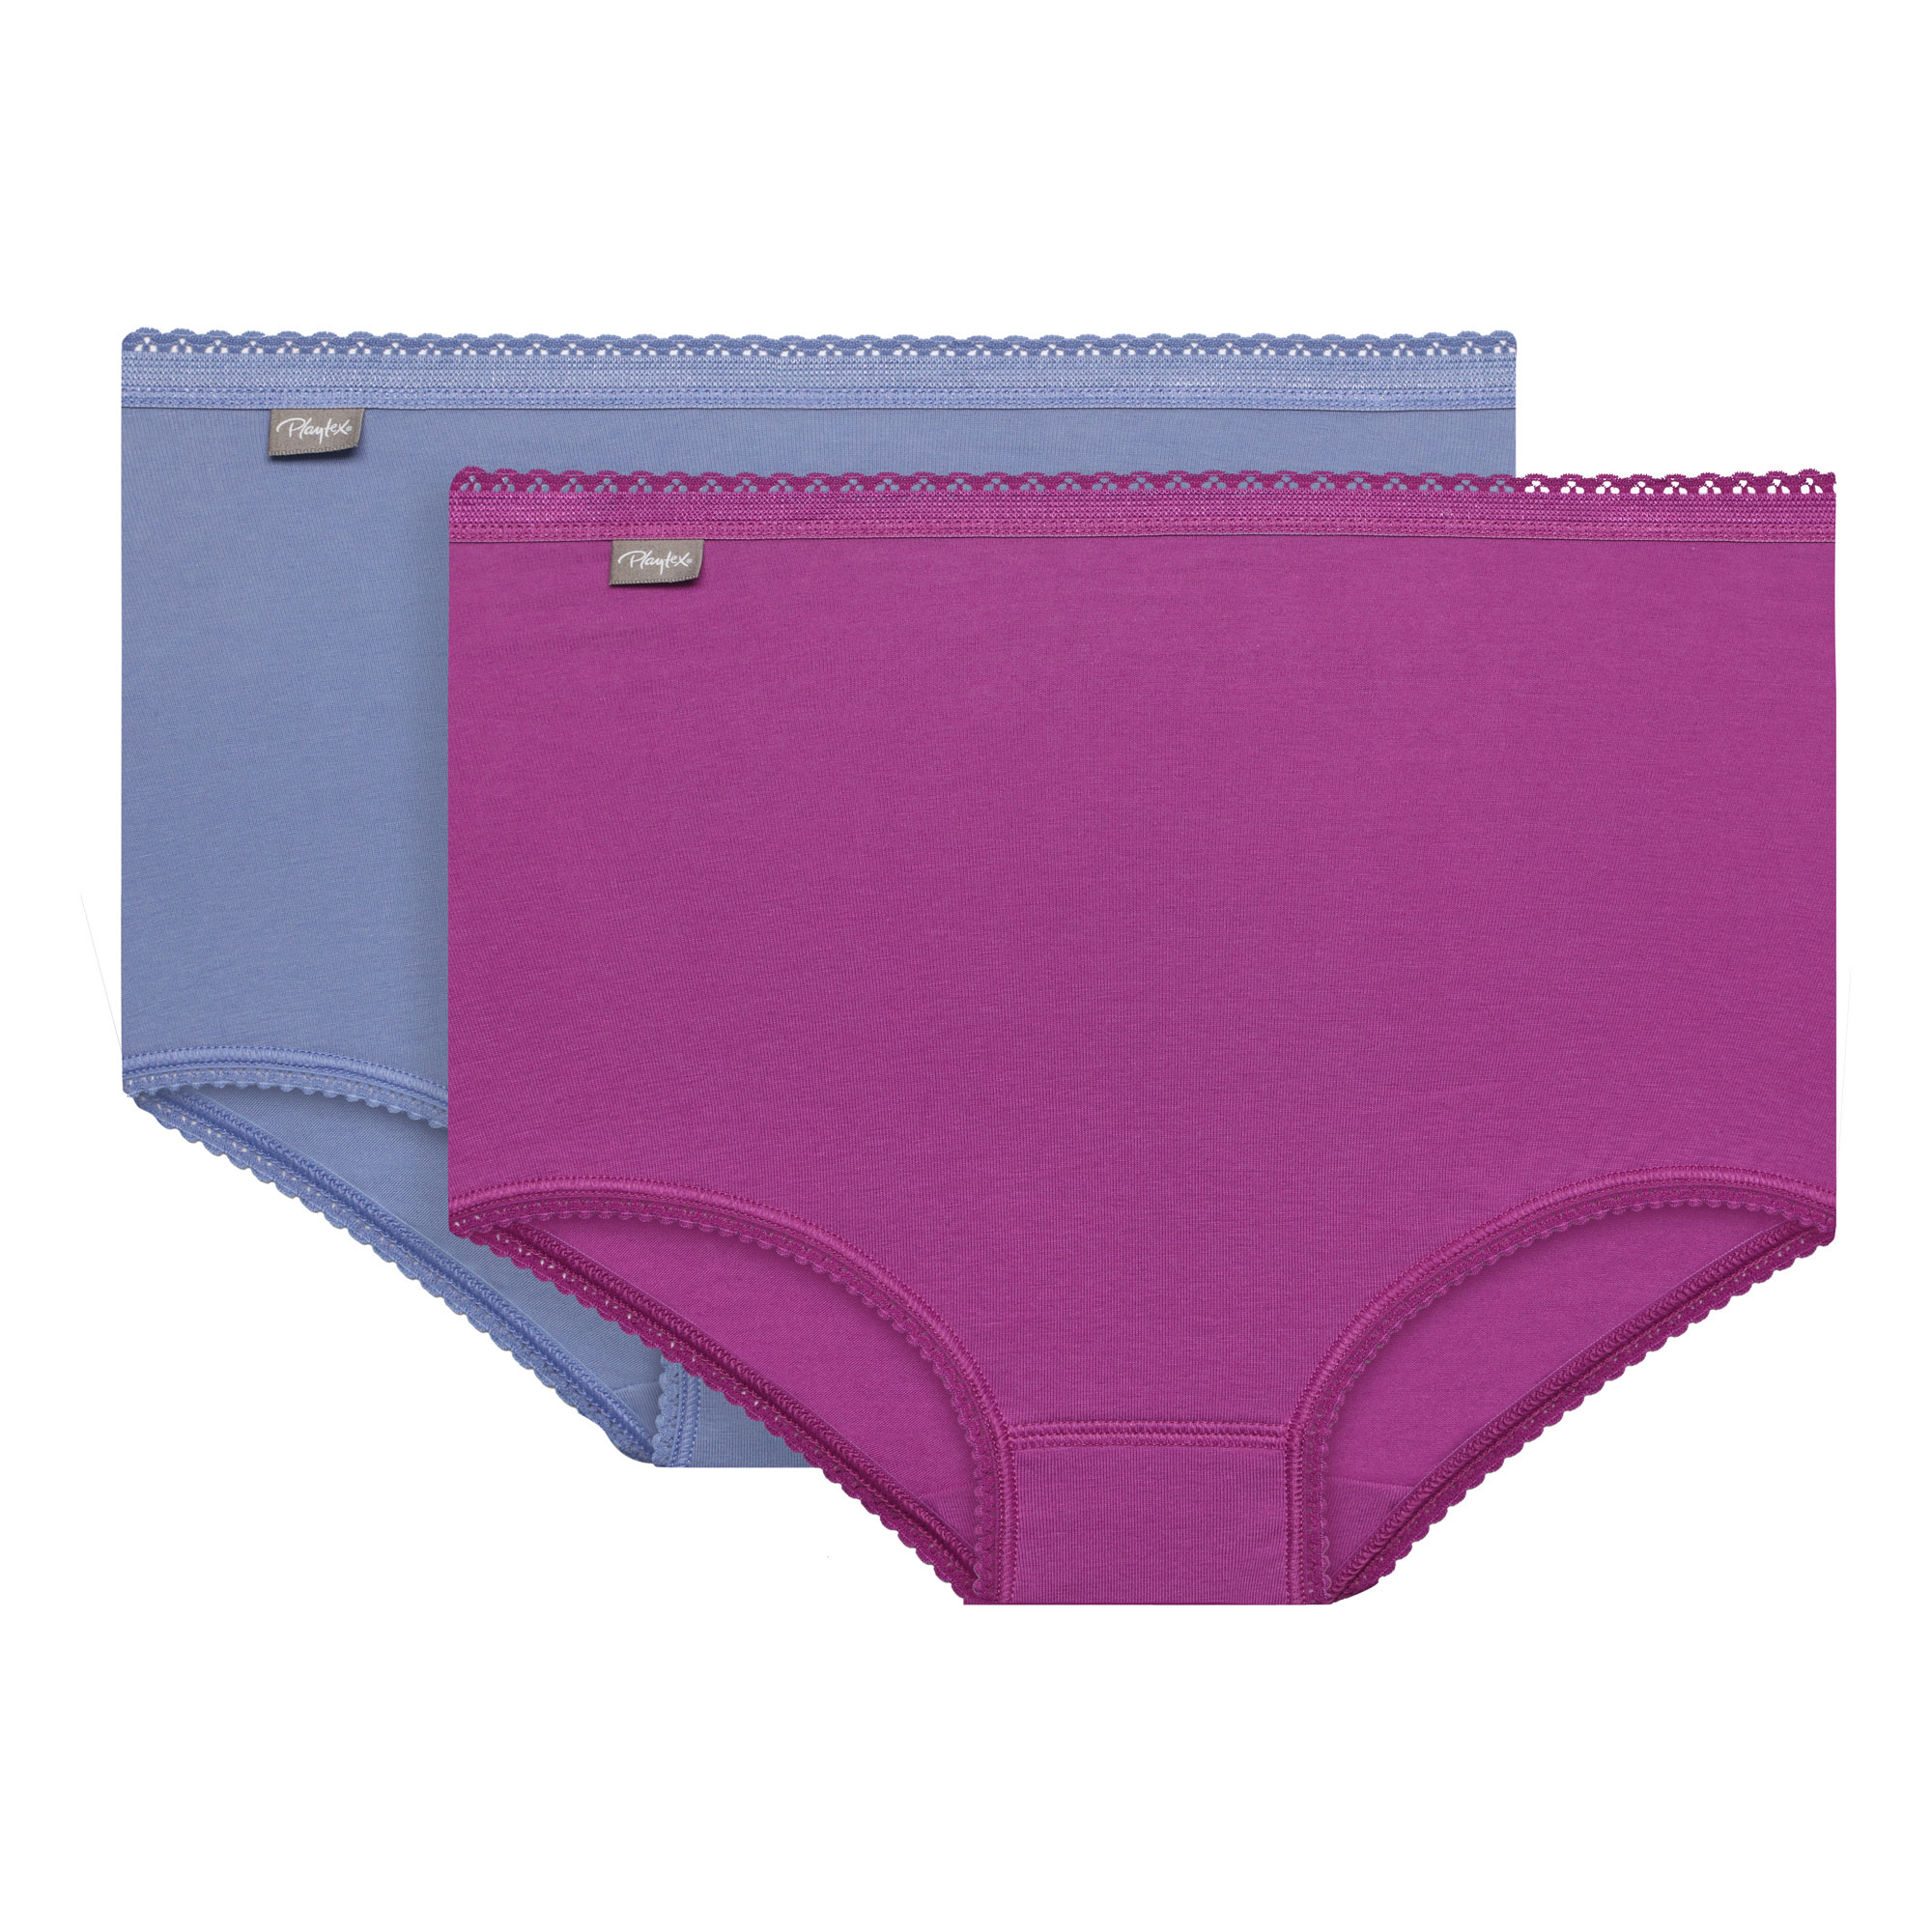 3 Pack Maxi briefs : white, purple and blue - Cotton Stretch-PLAYTEX